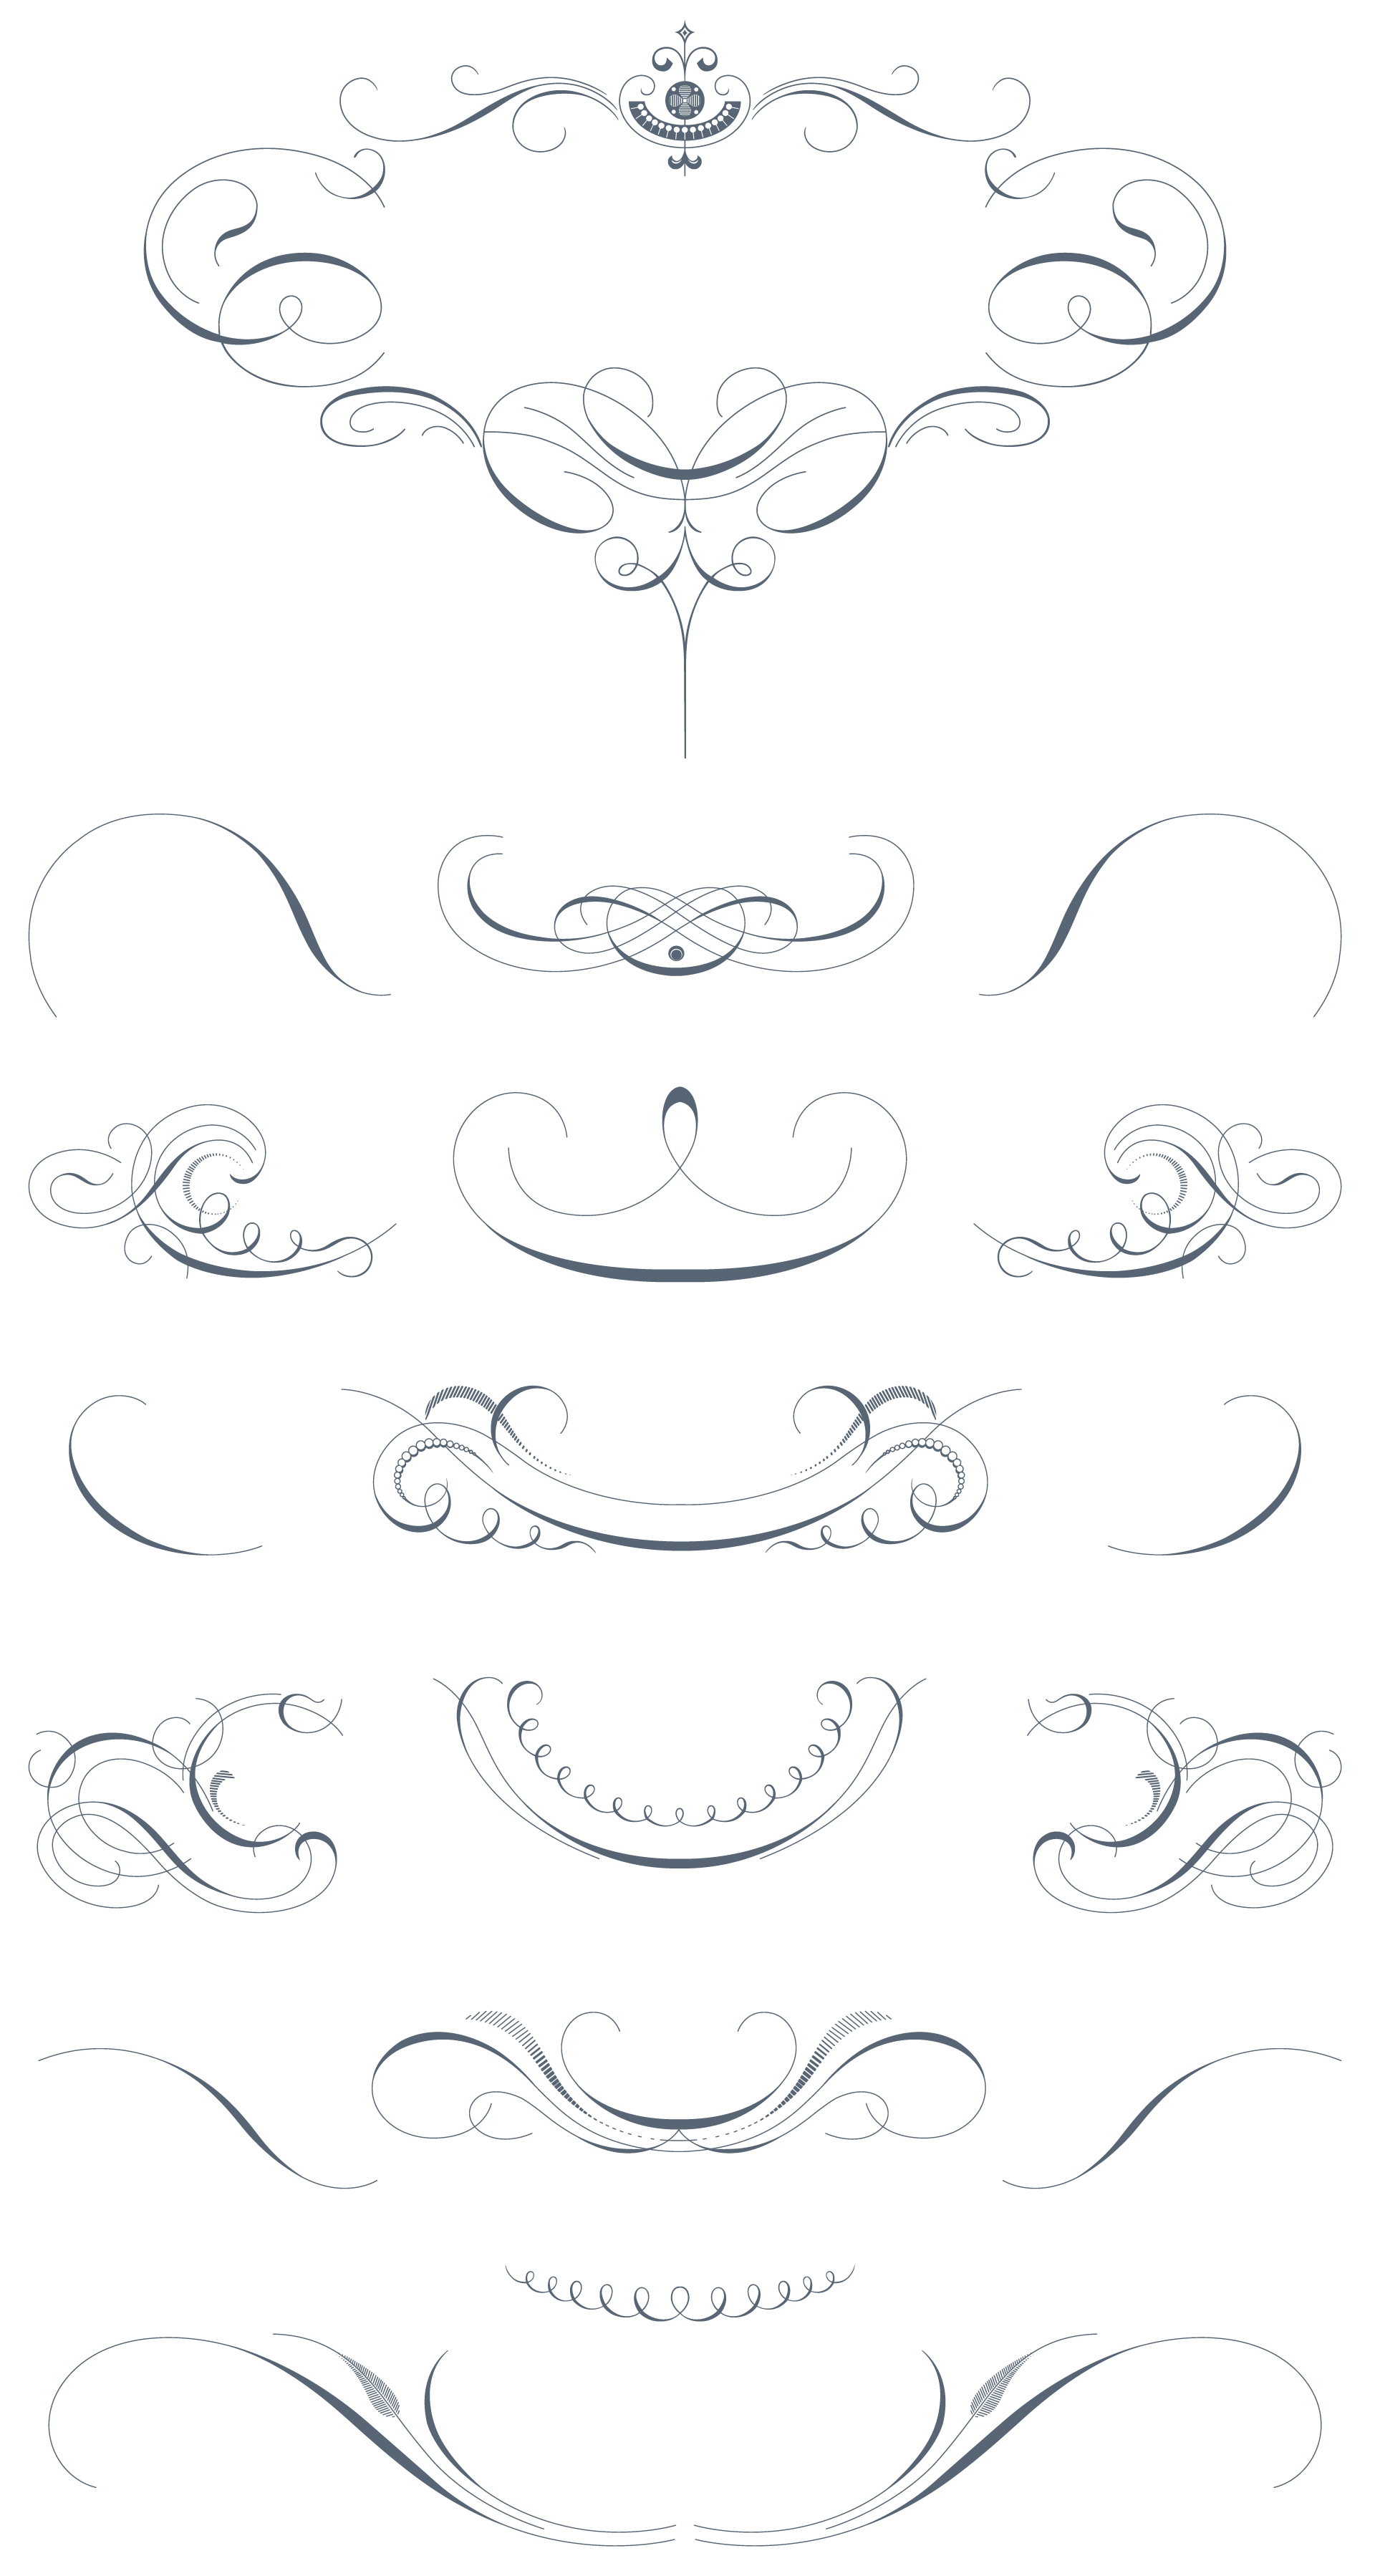 It vector ornament. Luxurious flourishes pack ornaments